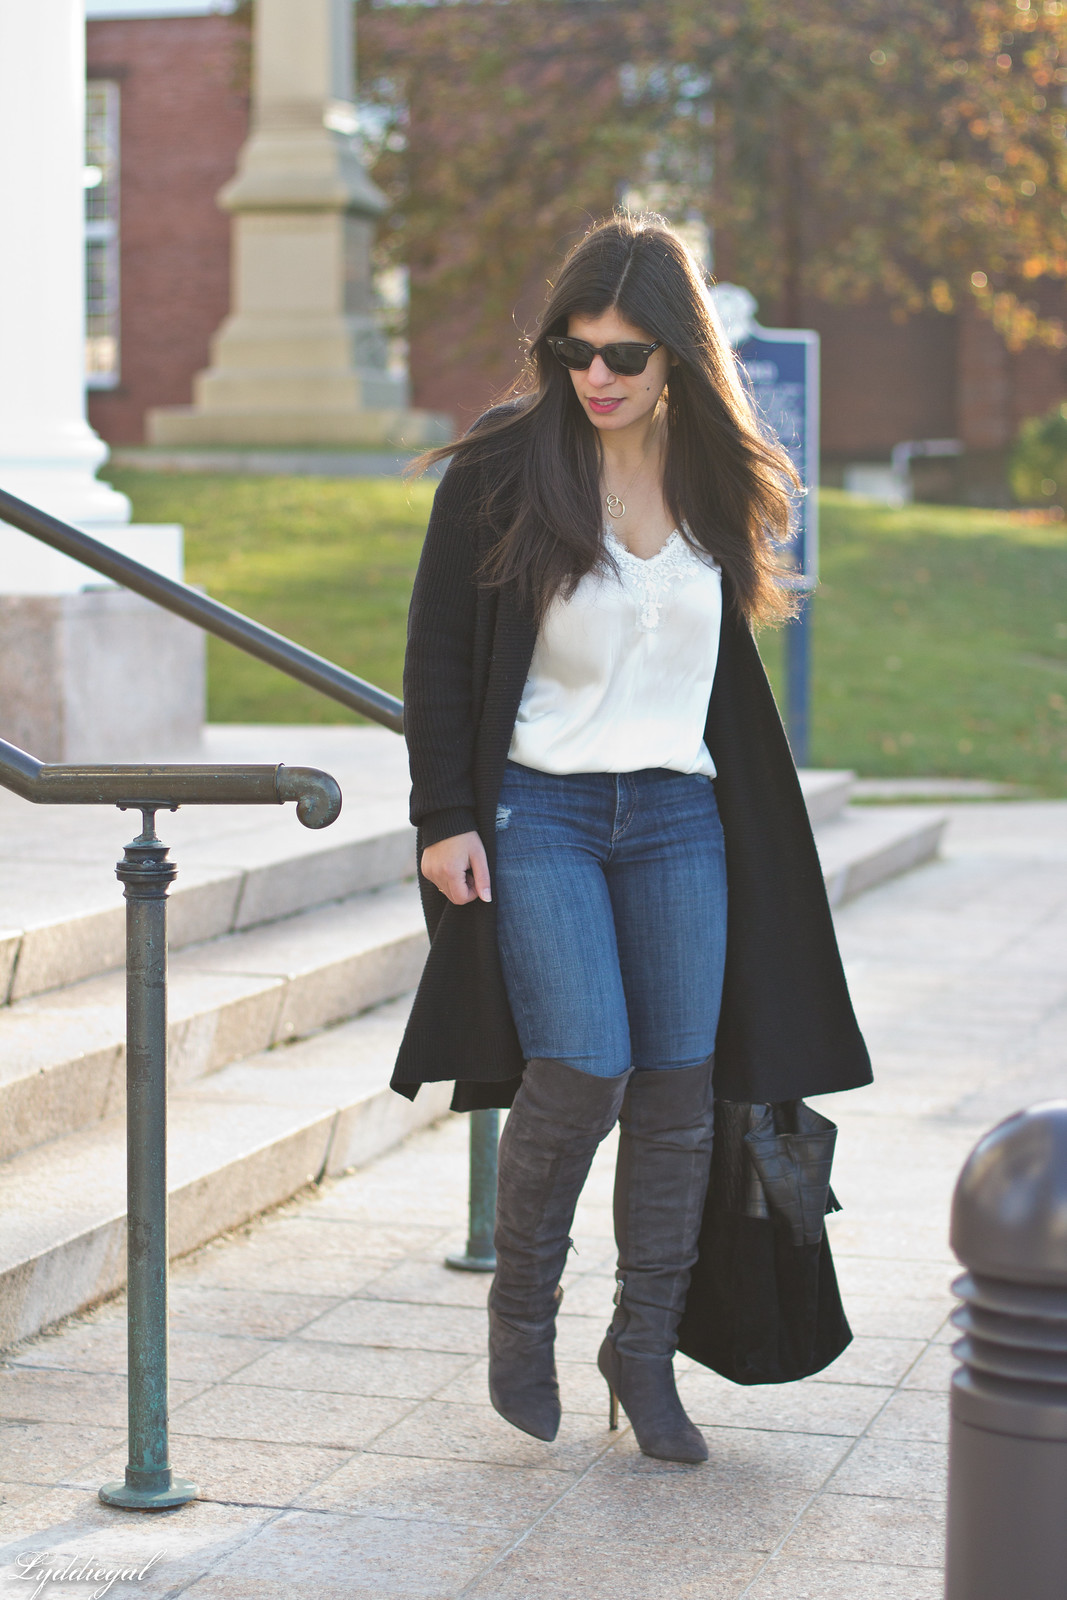 How to style over the knee boots with jeans